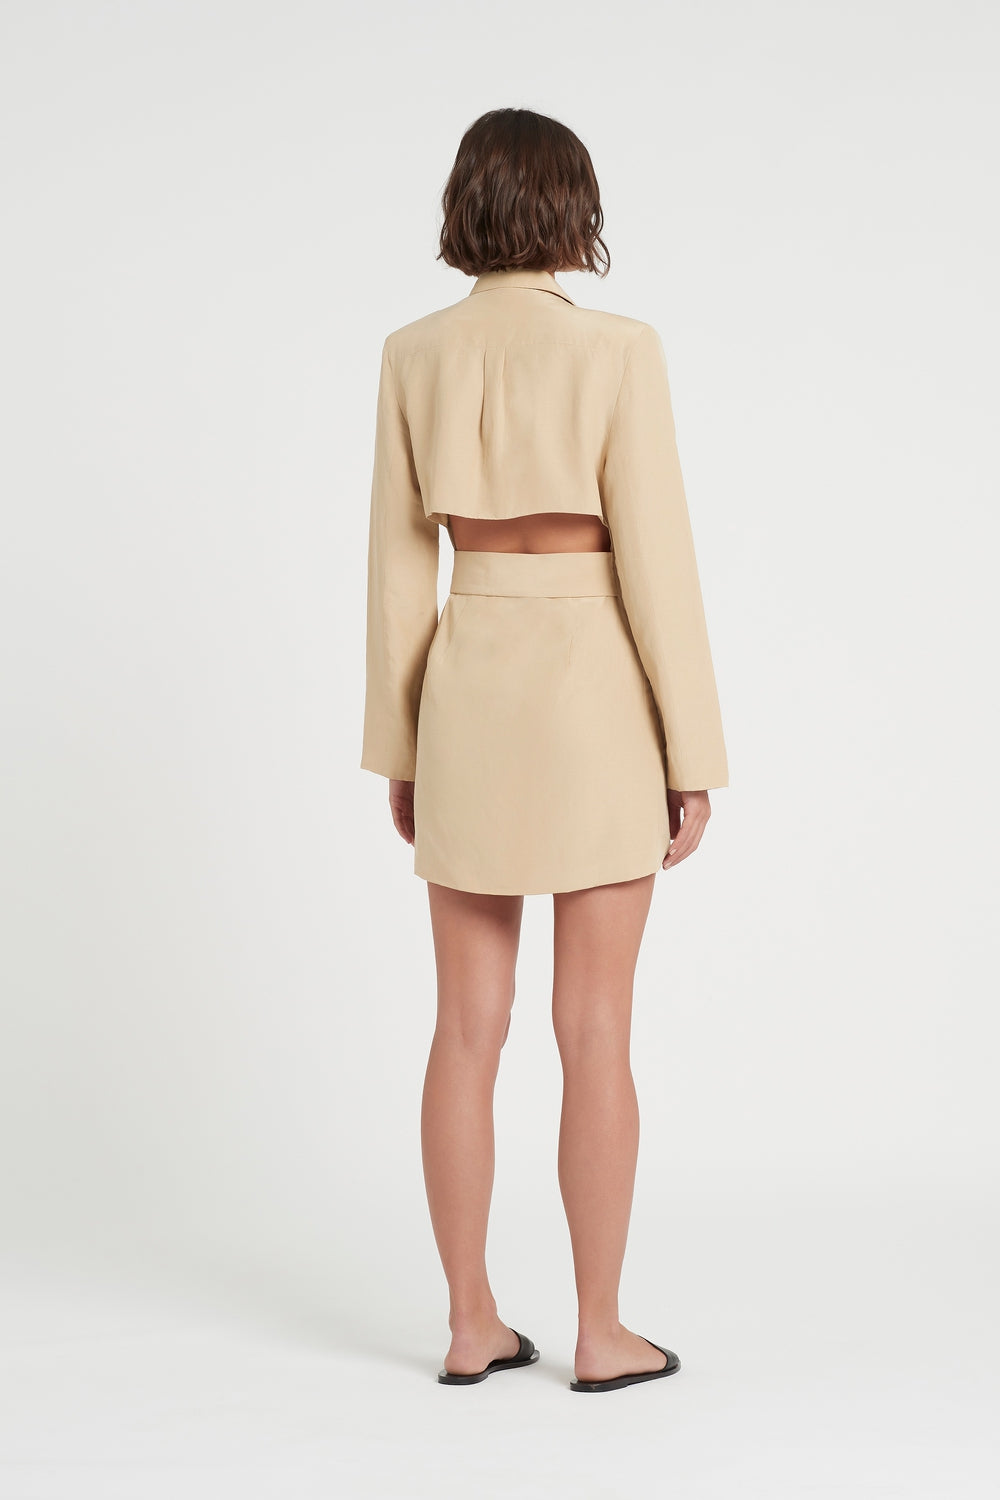 SIR the label LEON LONG SLEEVE MINI DRESS CARMELO